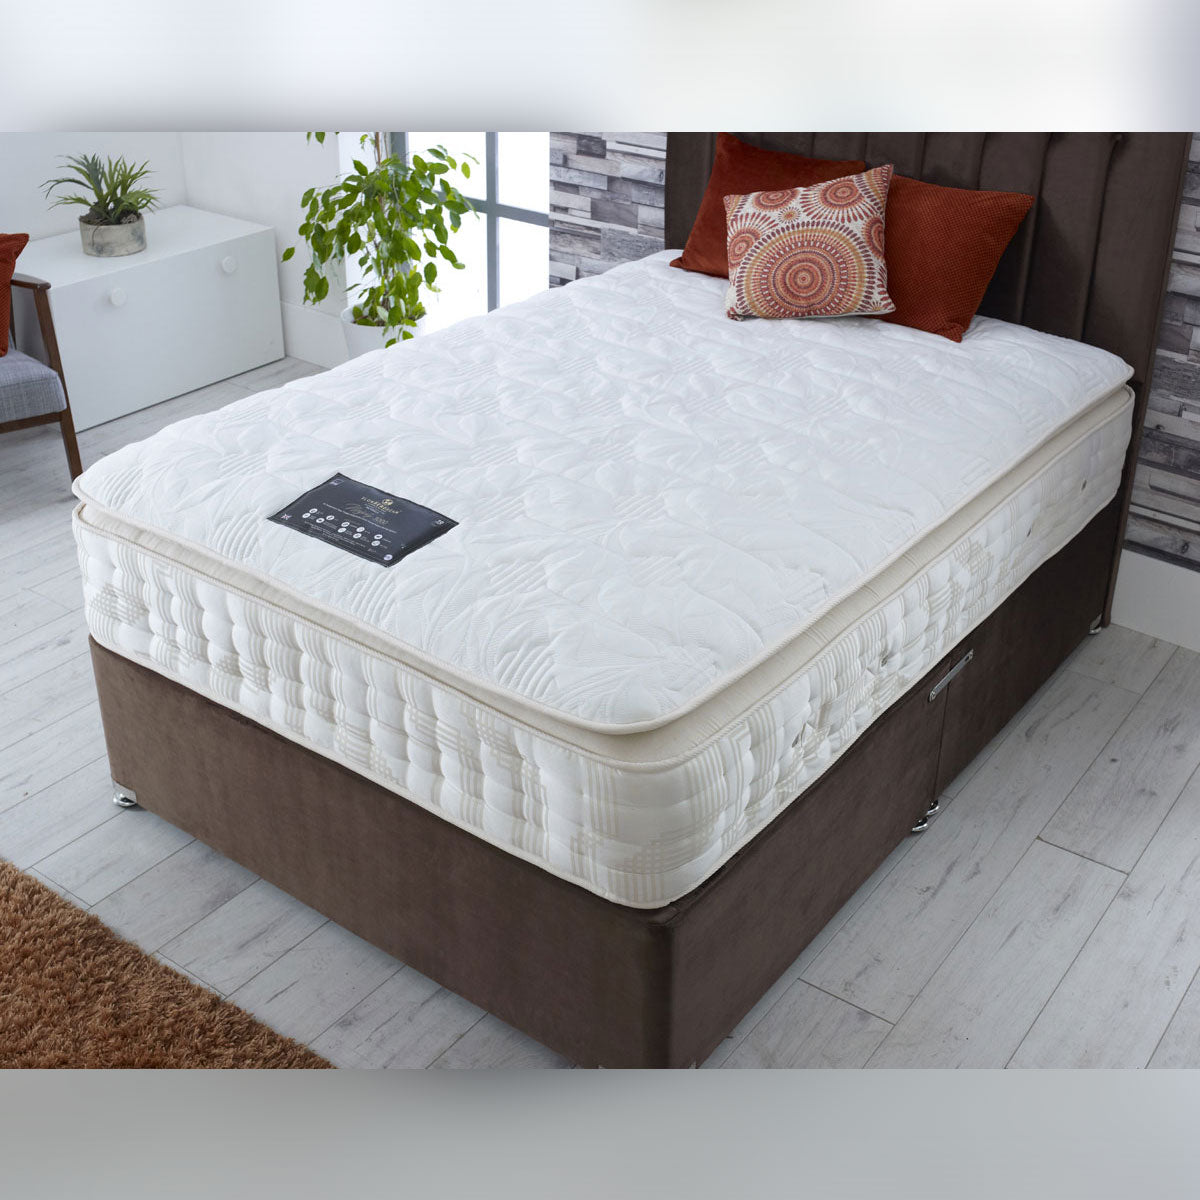 Diamond Collection Majesty 3000 Pocket Sprung Natural Pillow Top Divan Bed Medium Firm 32cm Deep